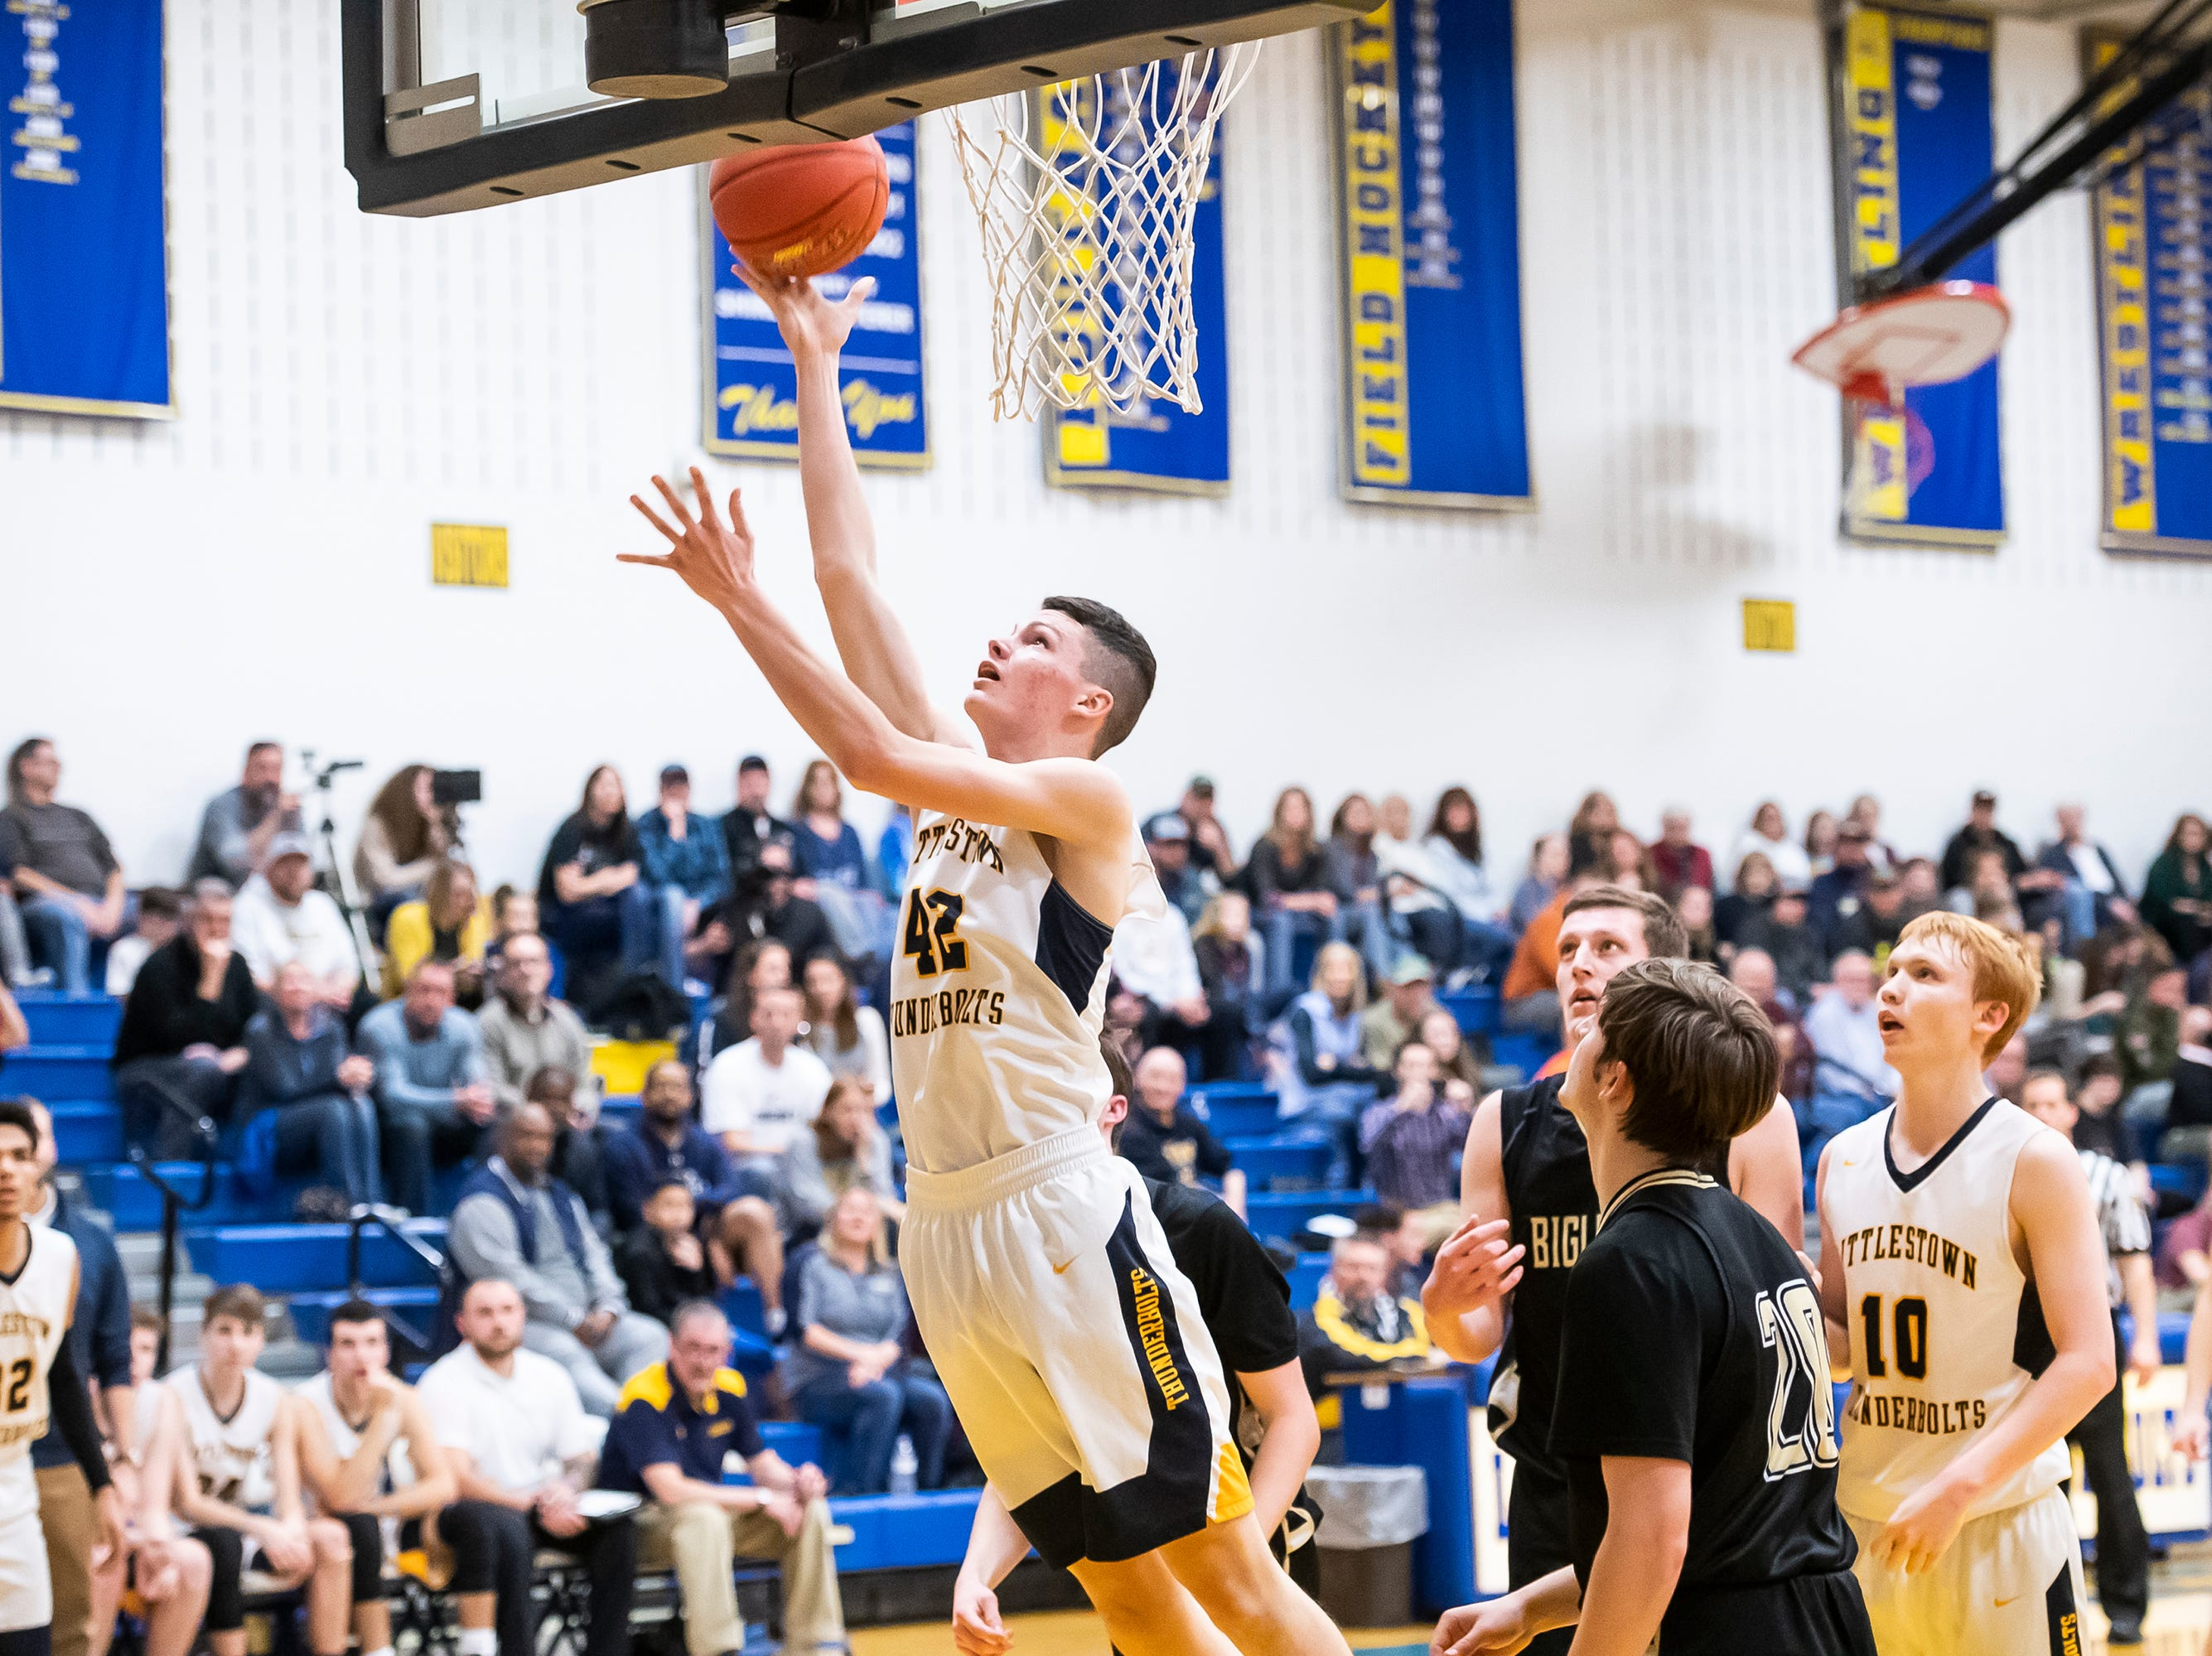 Littlestown's Brayden Staub scores on a layup during play against Biglerville Tuesday, February 5, 2019. The Bolts won 54-46 on senior night.